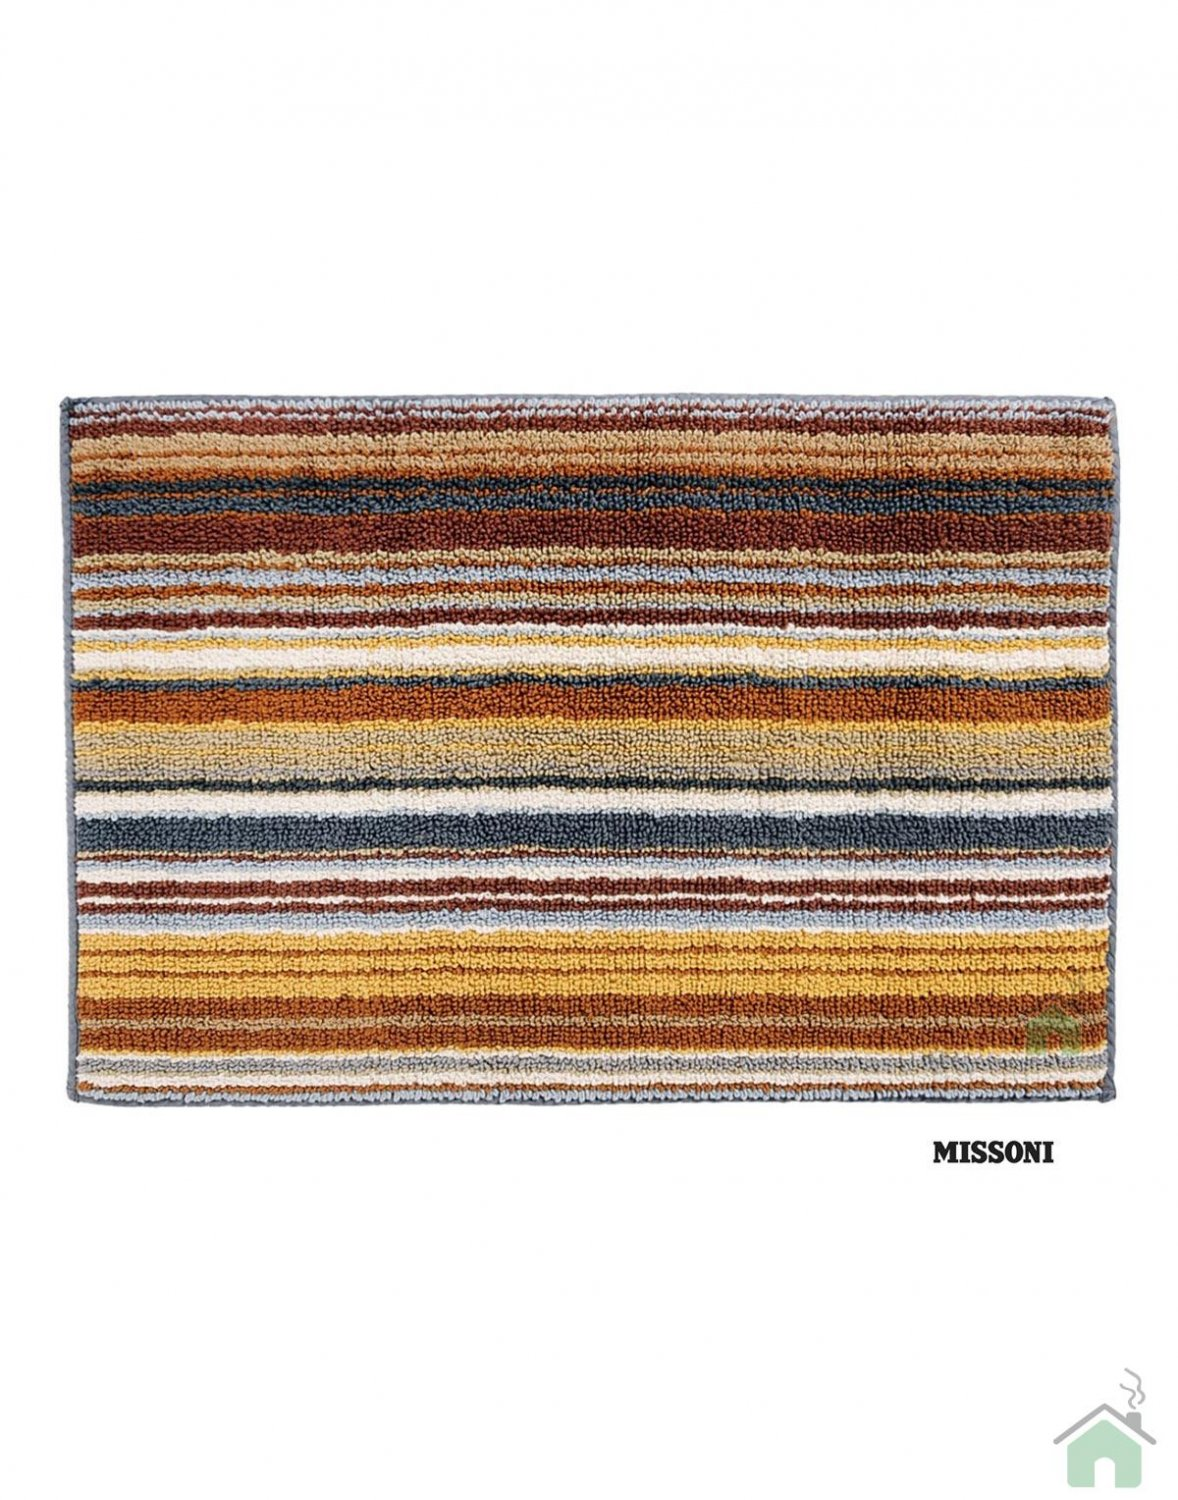 Missoni Jazz 160 bathmat - 2014 Collection